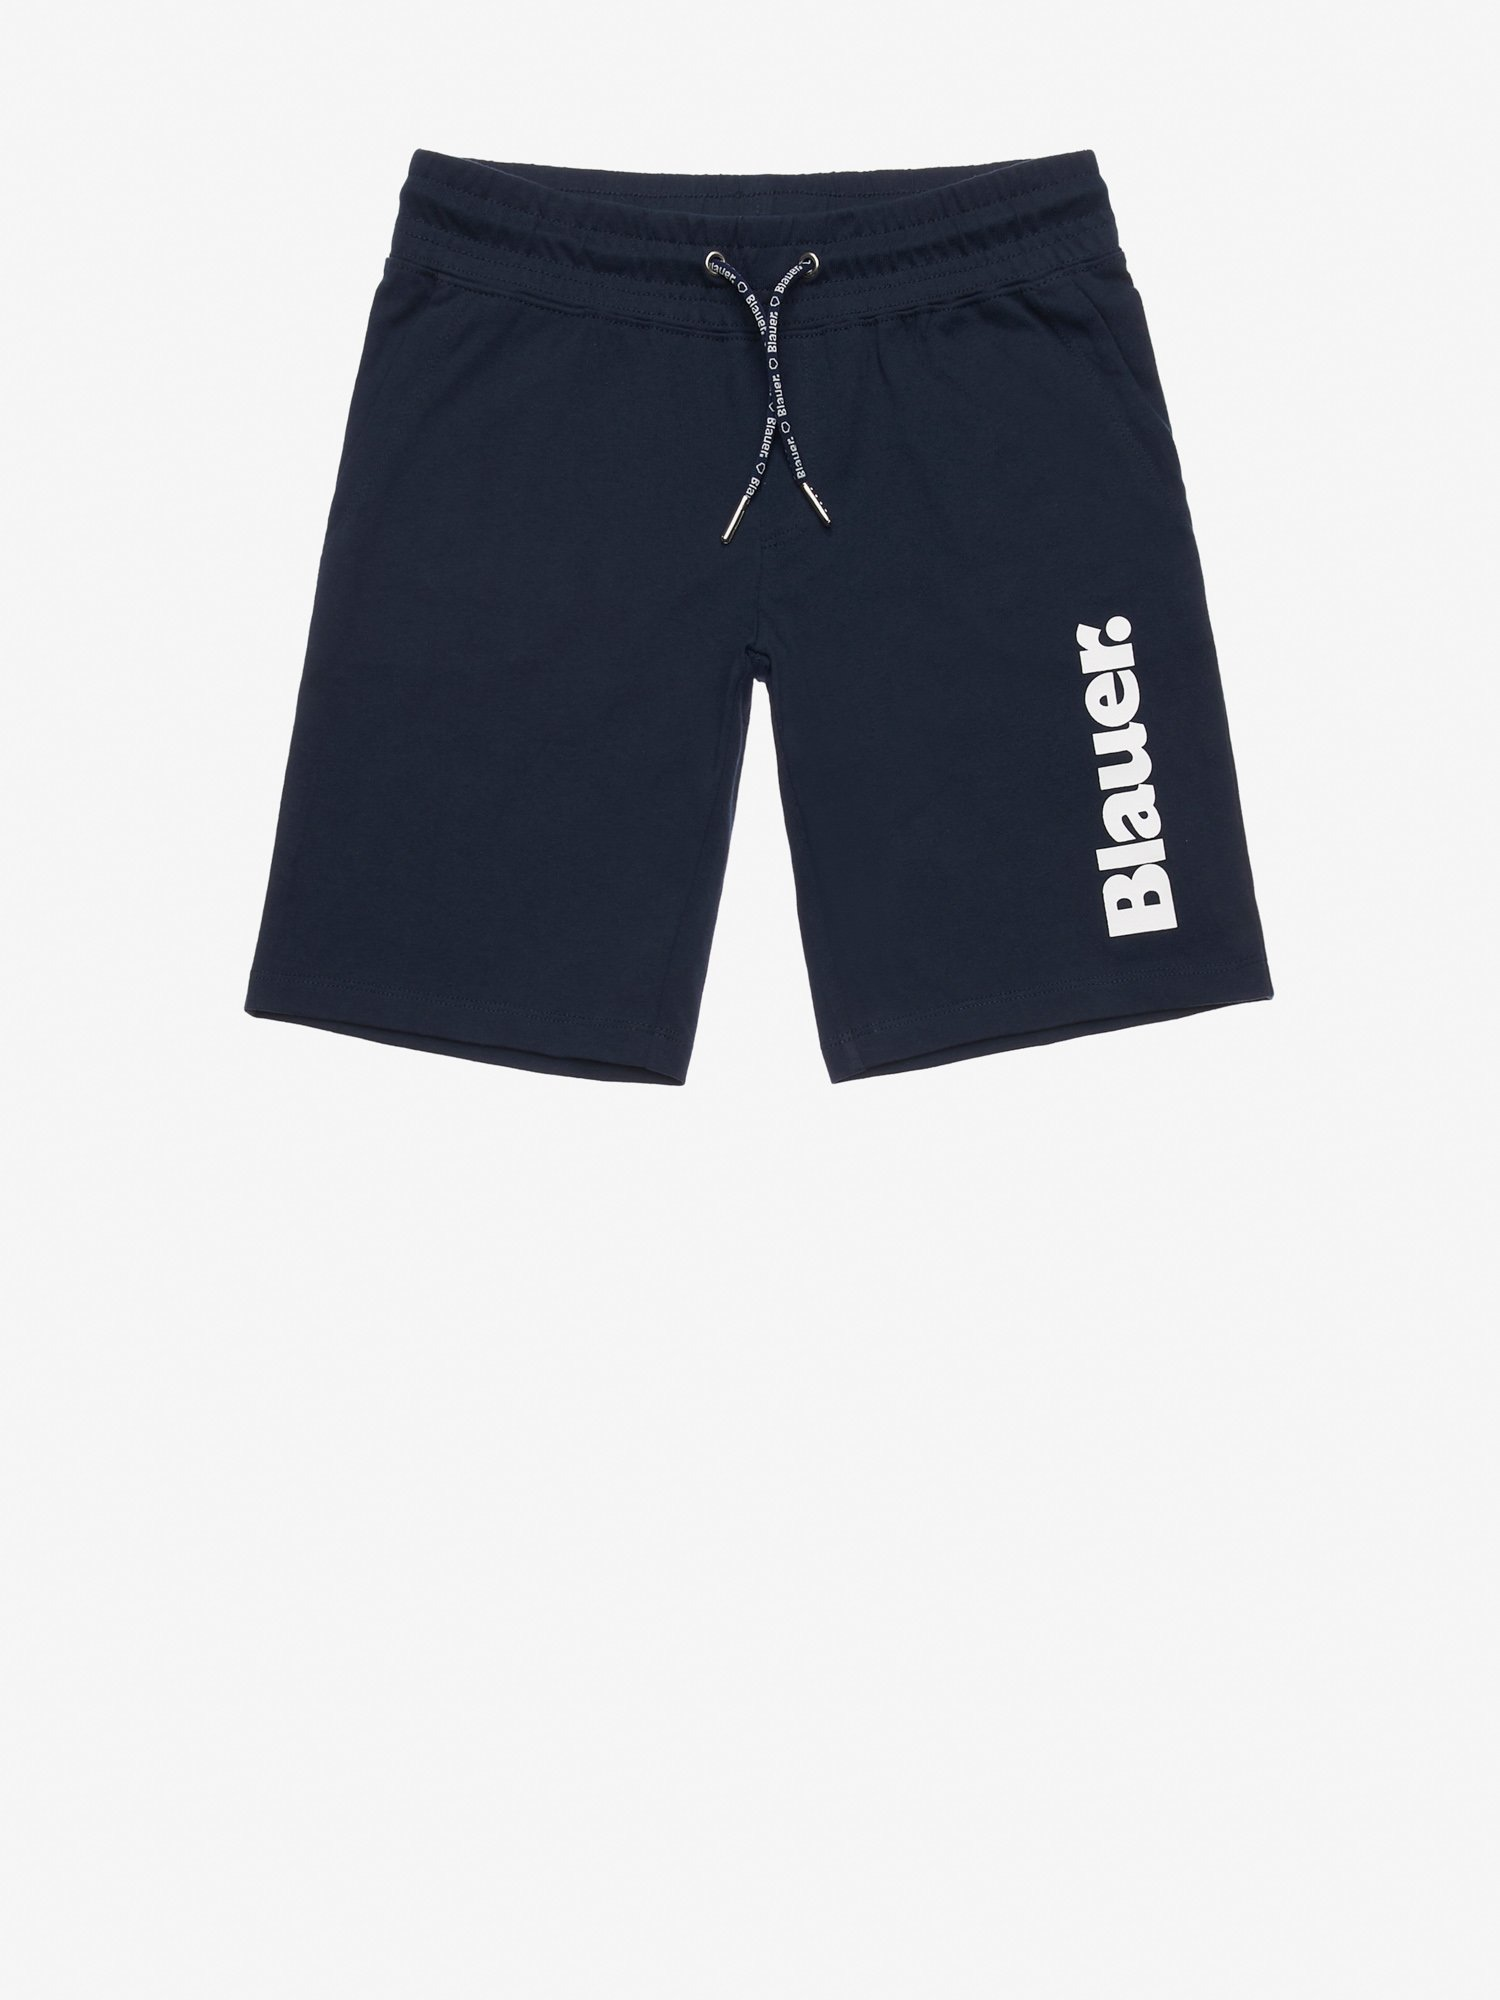 JUNIOR BLAUER FLEECE SHORTS - Blauer